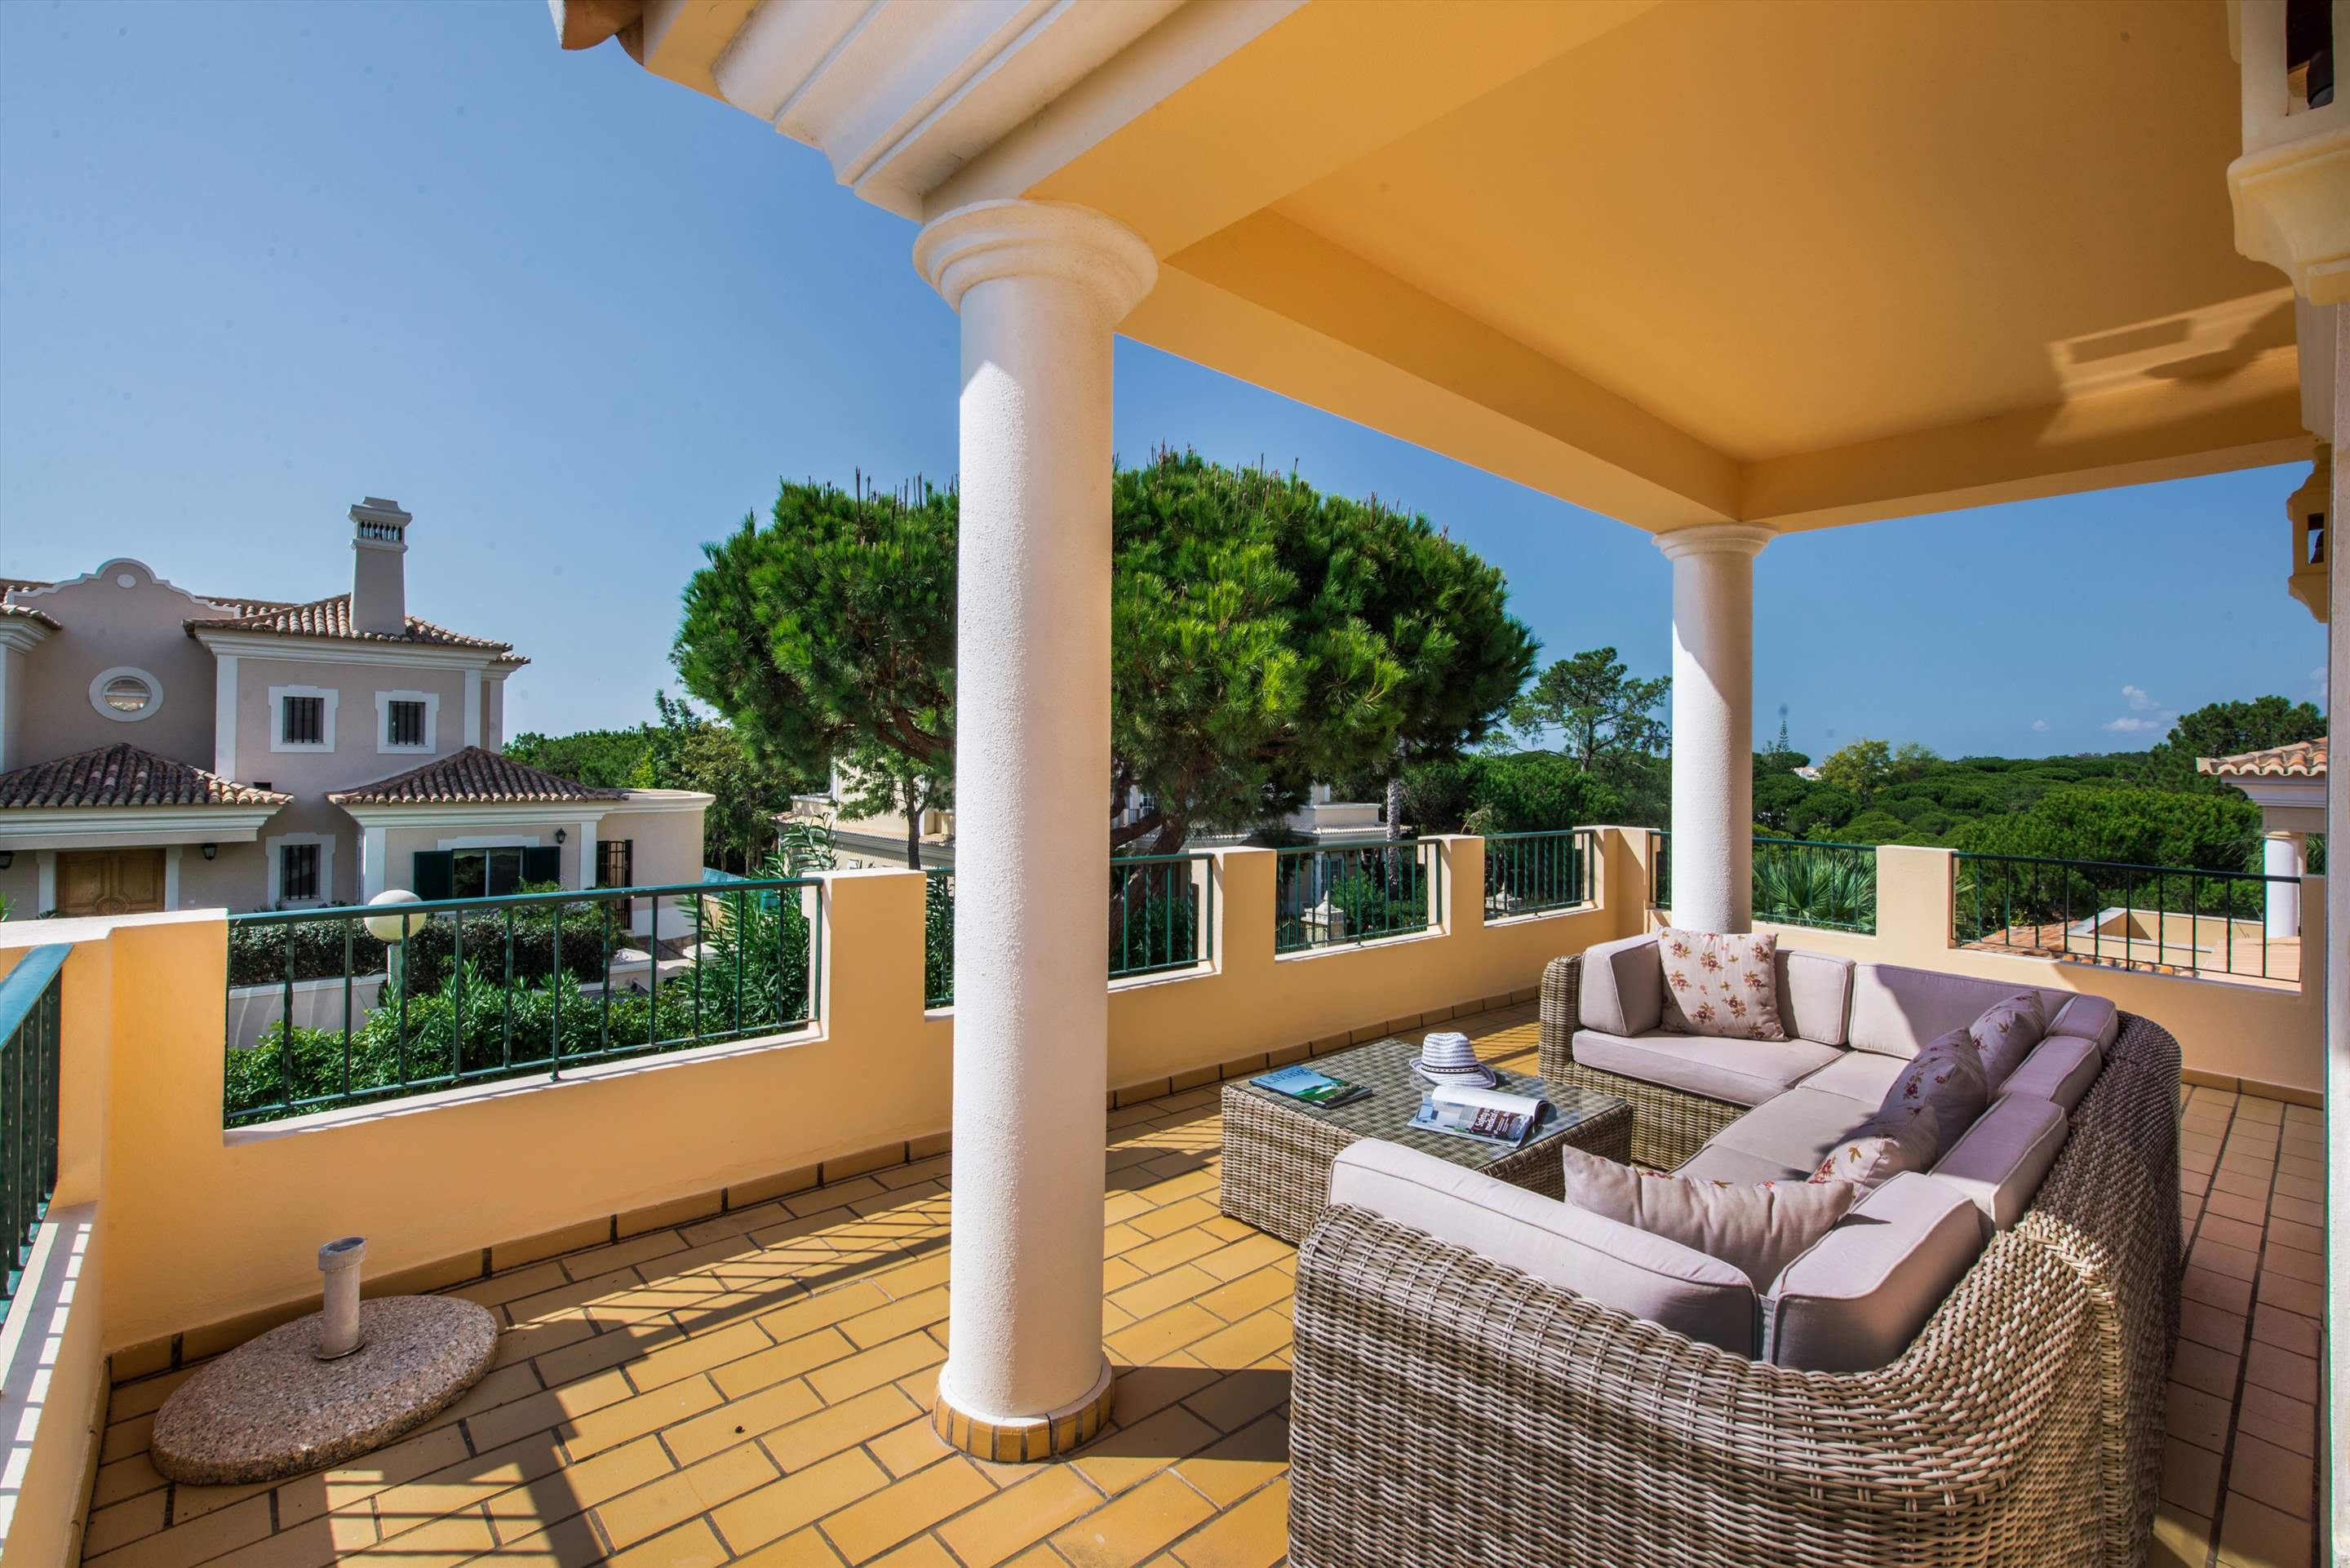 Casa da Encosta, 4 bedroom villa in Vale do Lobo, Algarve Photo #10